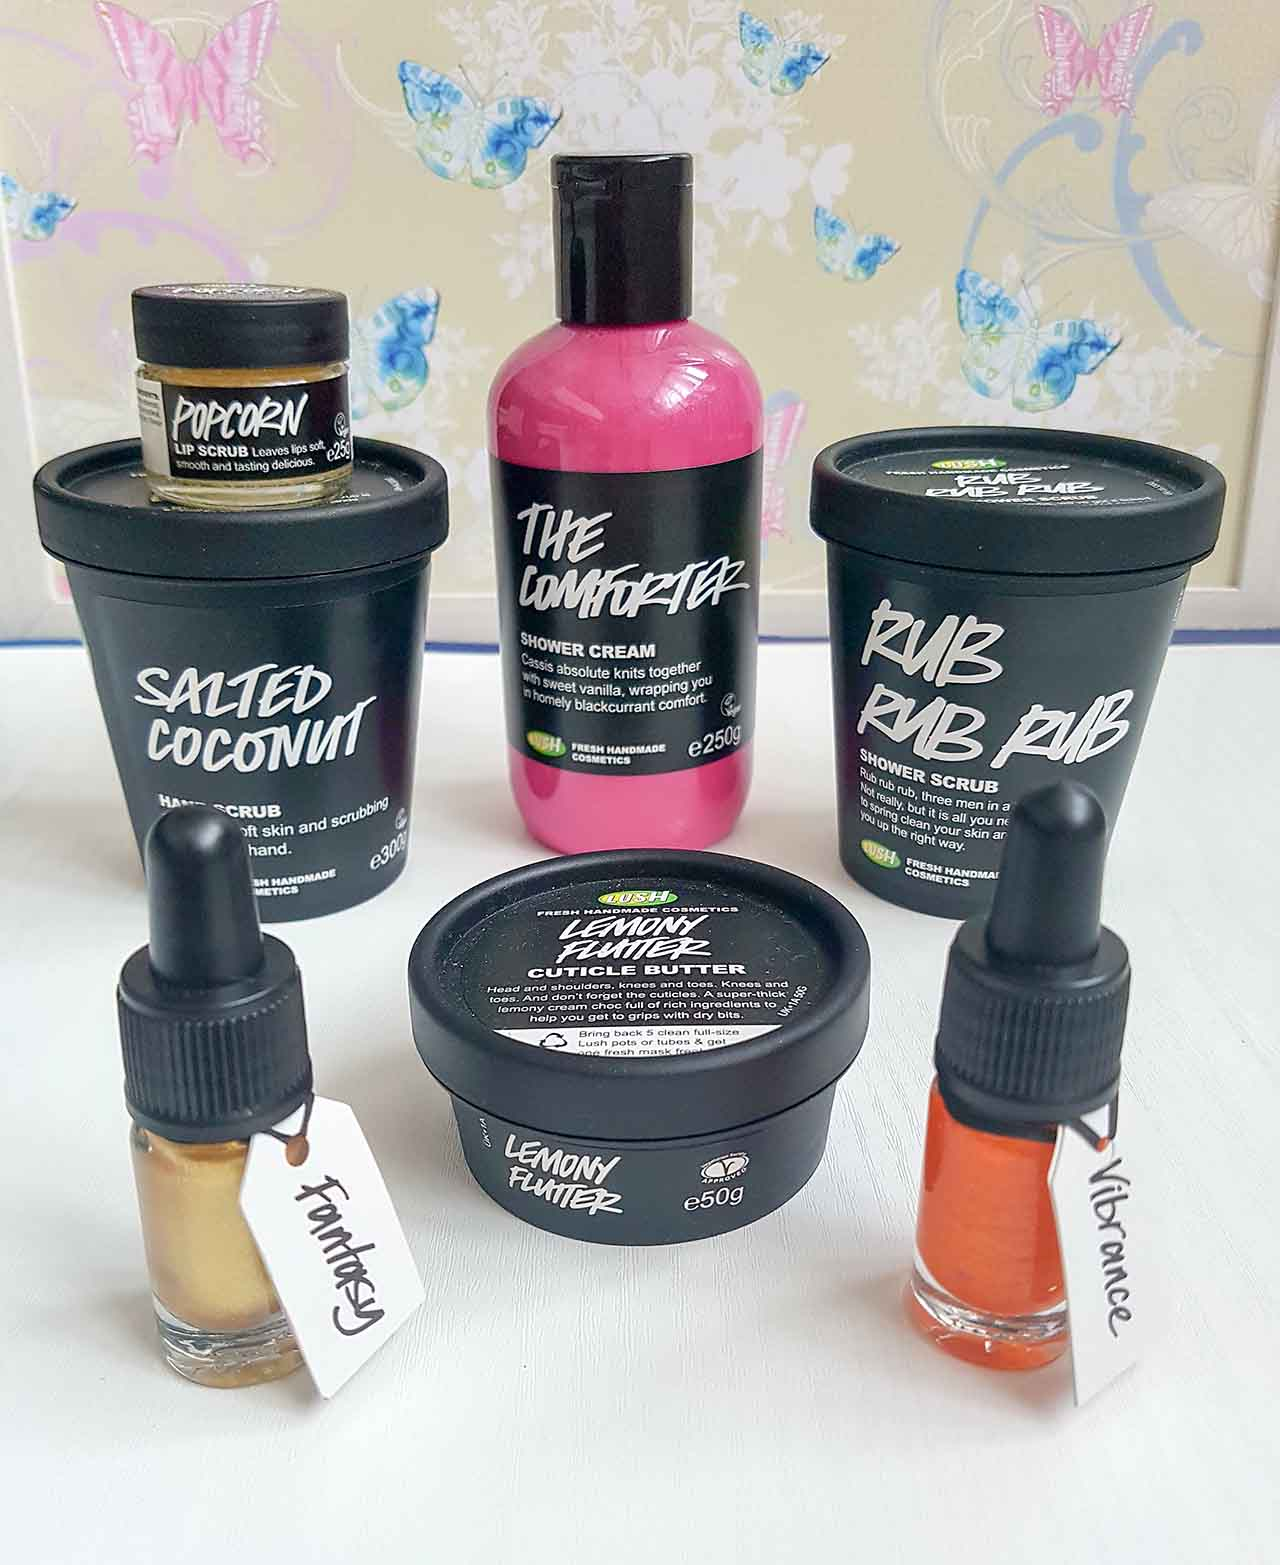 Lush Fresh Handmade Cosmetics – How Lush Are They: I had a proper look around a Lush store only recently and it was a treasure trove of beautiful scents, colours and textures! Lush provides ranges for body, hair and face, and also has makeup and perfume products. They cater for all skin types and needs and have some truly weird and wonderful ingredient combinations! As I wondered around the store I decided it was time to pick up a few items to test and purchased the following. From back to front I bought a Popcorn Lip Scrub, a Salted Coconut Hand Scrub, The Comforter Shower Cream, the Rub, Rub, Rub Shower Scrub, a gold eyeliner called Fantasy, the Lemon Flutter Cuticle Butter and an orange lipstick called Vibrance. Since buying them, I have used each item a number of times and absolutely love them! My reviews on each are below.